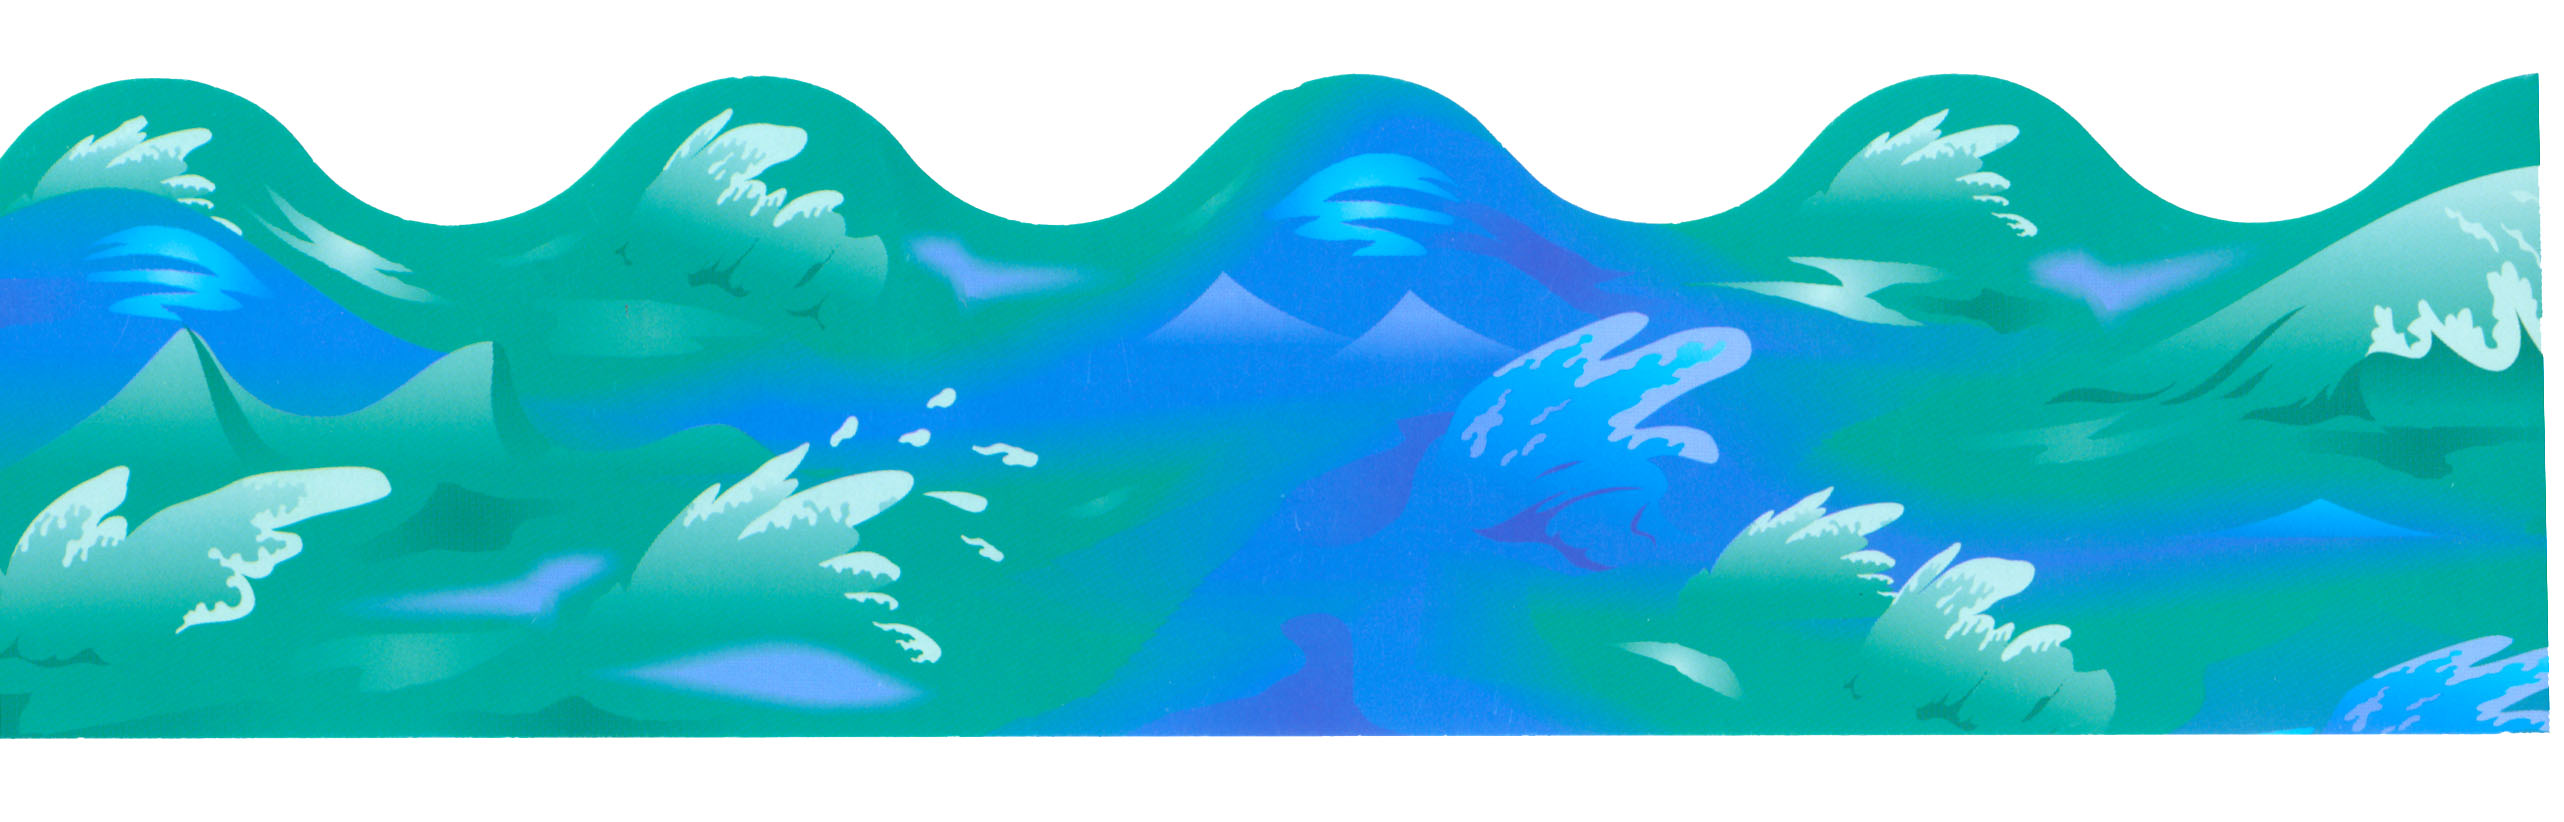 Clip Art Waves Clipart Waves Clip Art Cl-Clip Art Waves Clipart waves clip art clipart best hawaian background clipart-0